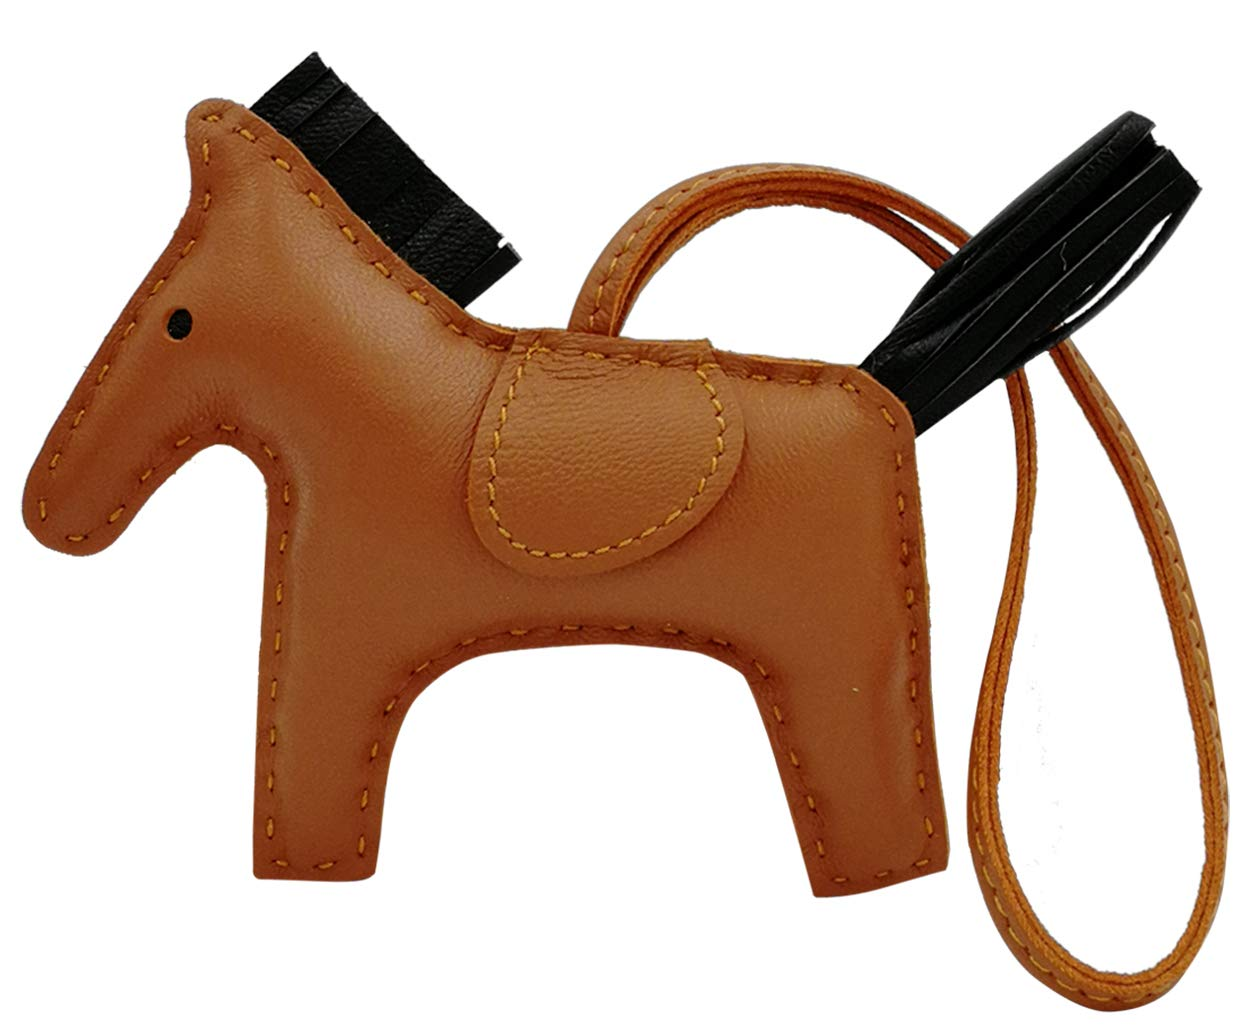 Bag Accessories for Women,Handmade Sheepskin Leather Horse, Bag Charm Pony Purse Car Accessories Gift (Large, Light Brown/Black) by Bang Shong